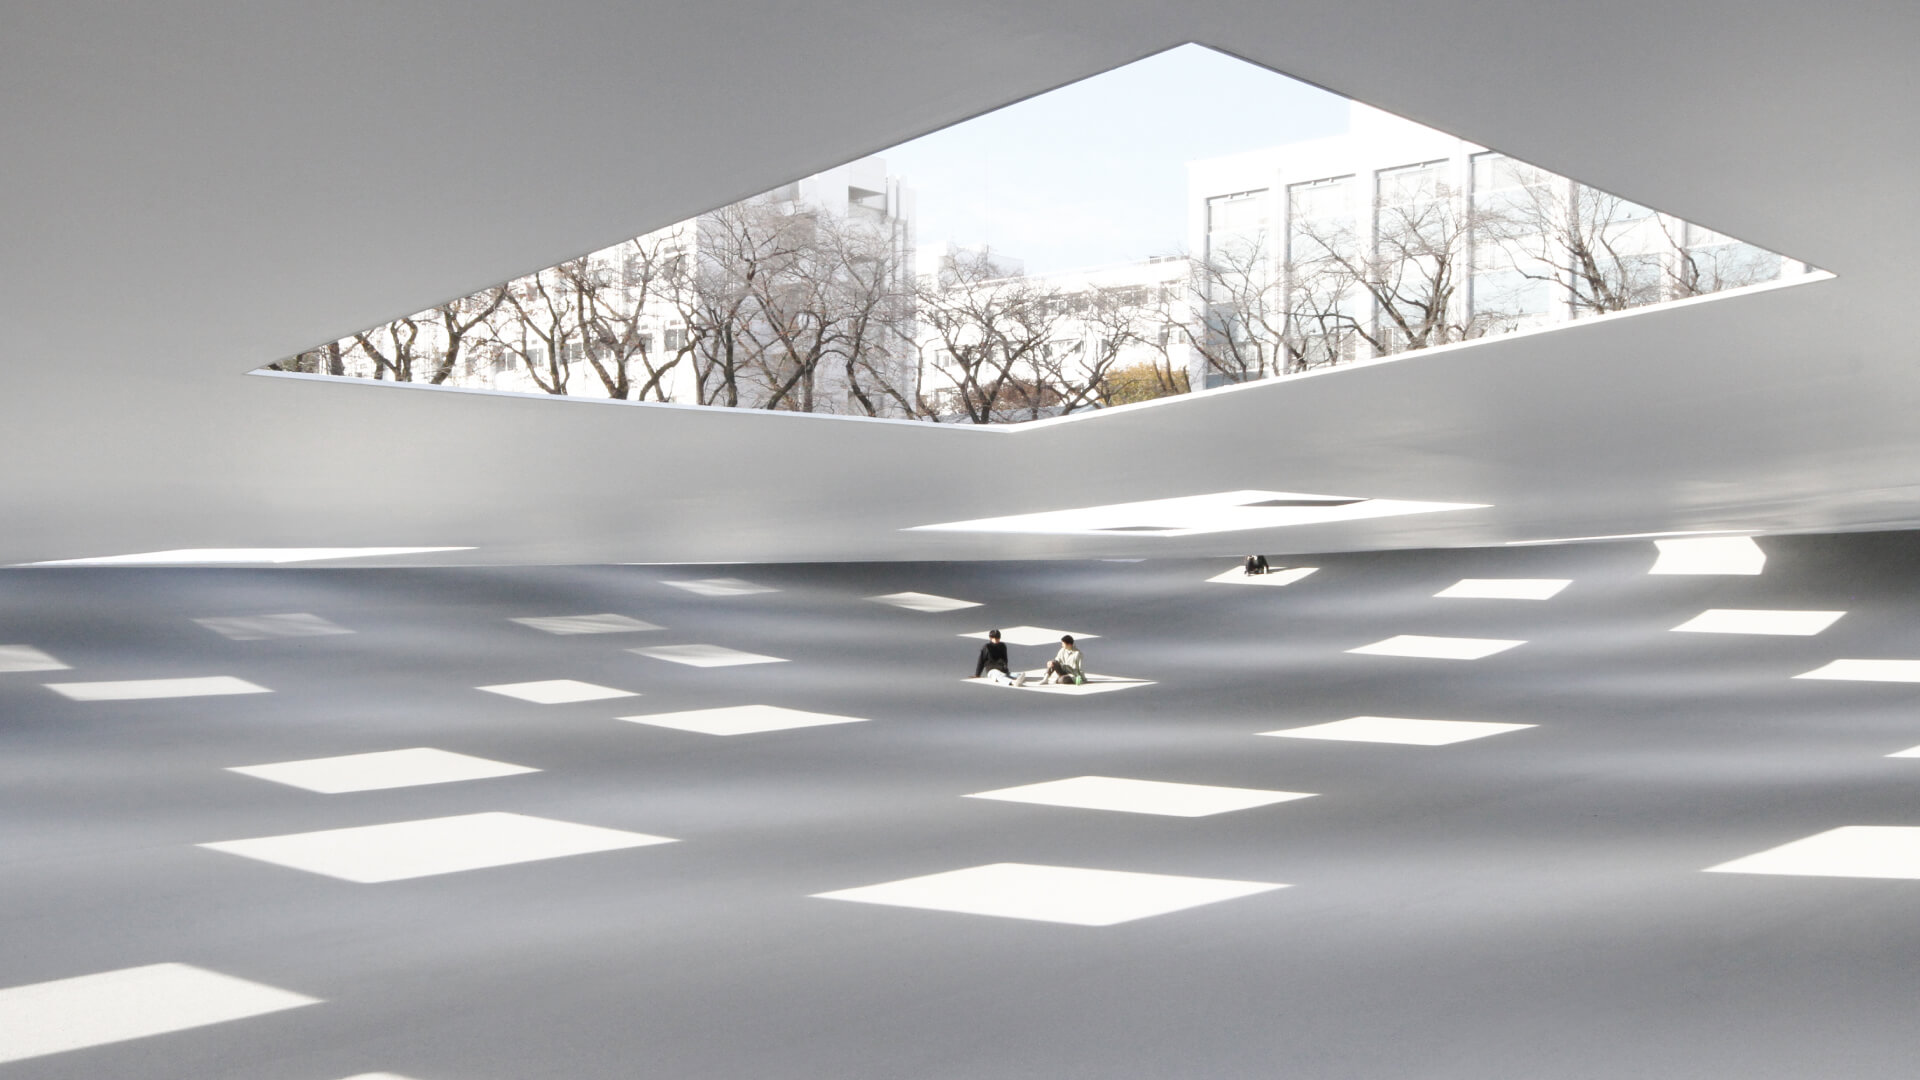 Plaza of Kanagawa Institute of Technology in Japan | Plaza of Kanagawa by Junya.Ishigami+Associates | STIRworld